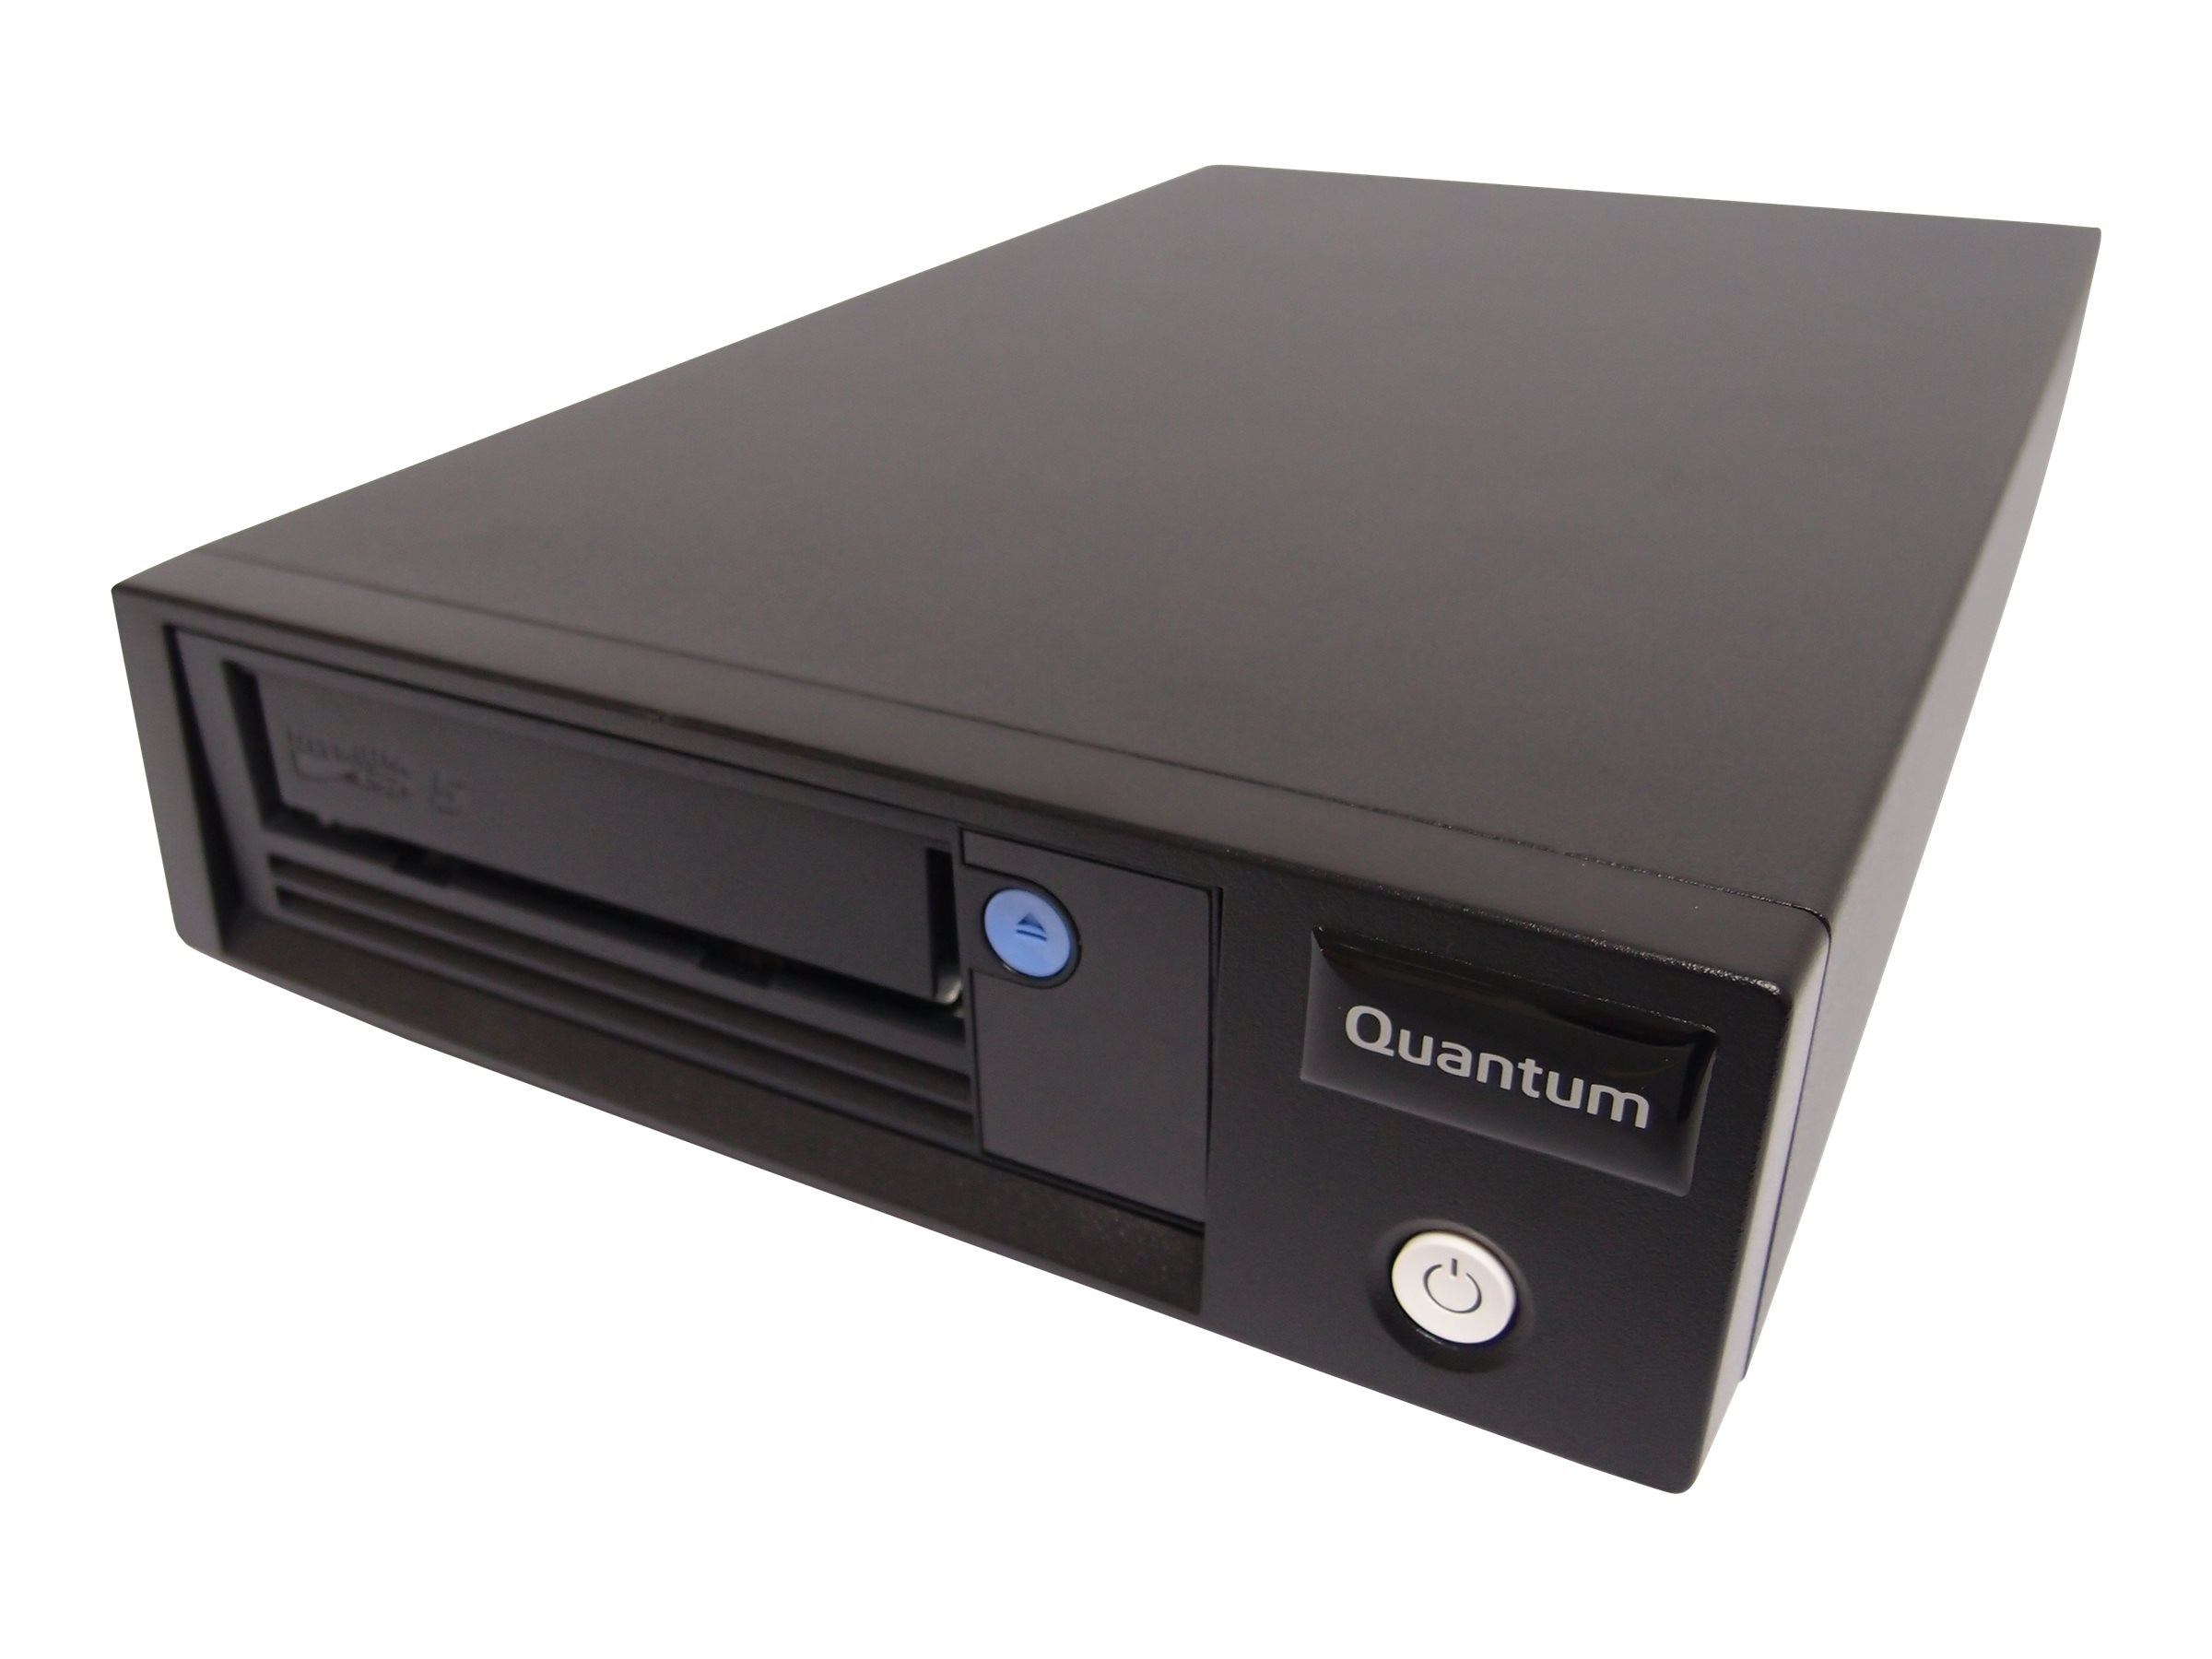 Quantum LTO-5 HH SAS 6Gb s Tabletop Model C Tape Drive - Black, TC-L52BN-AR-C, 17350171, Tape Drives